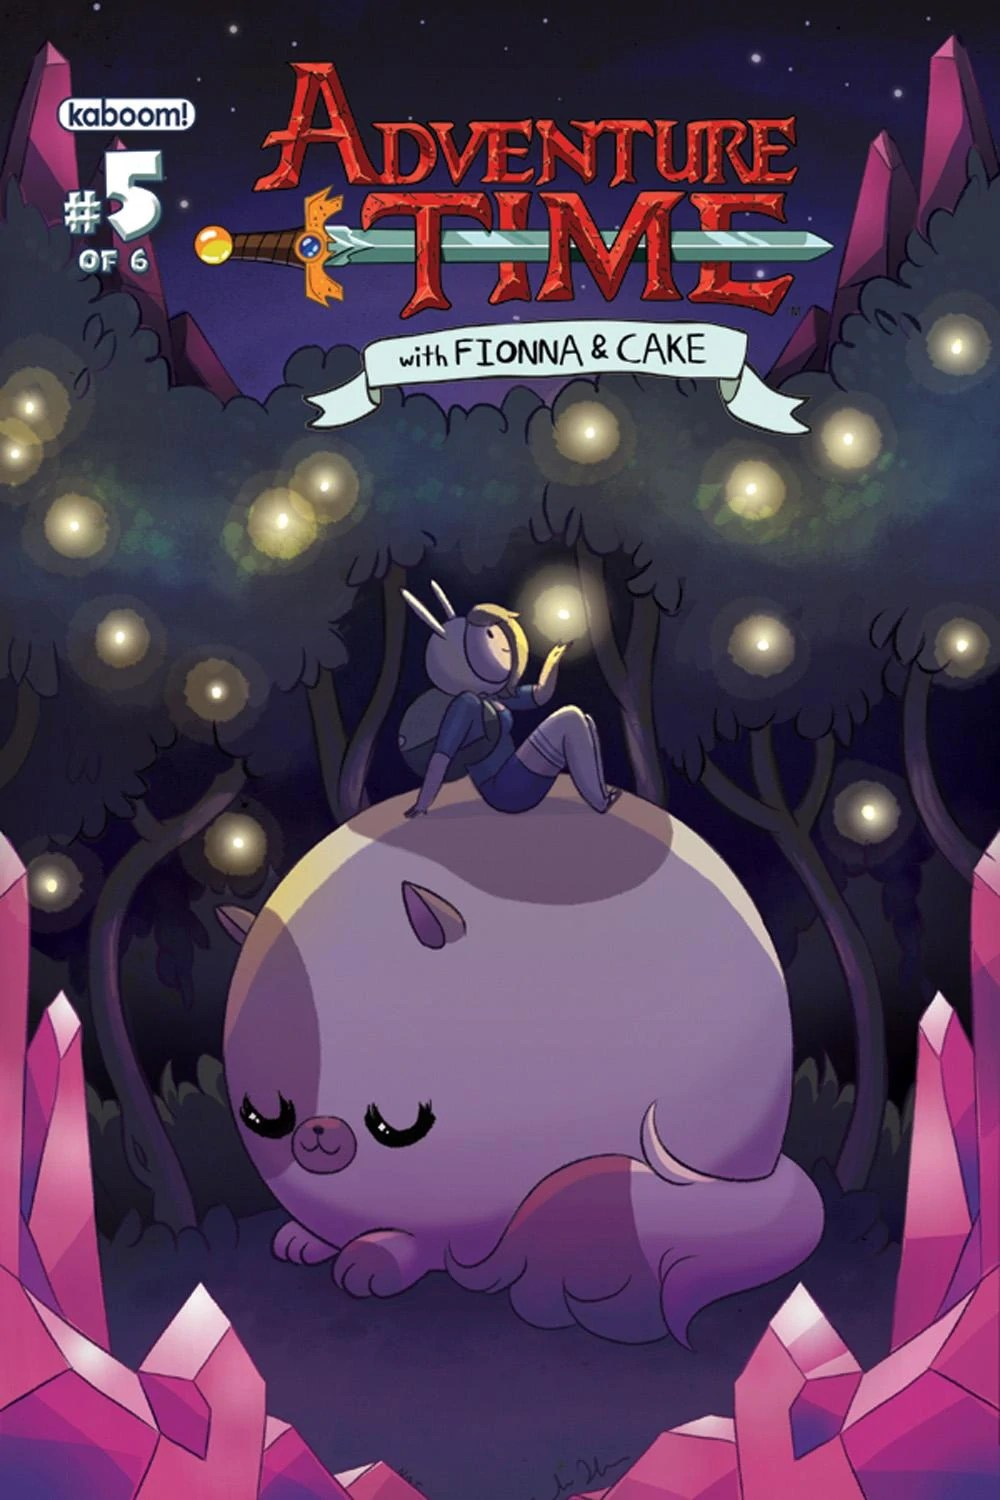 Adventure Time with Fionna and Cake Issue 5  Adventure